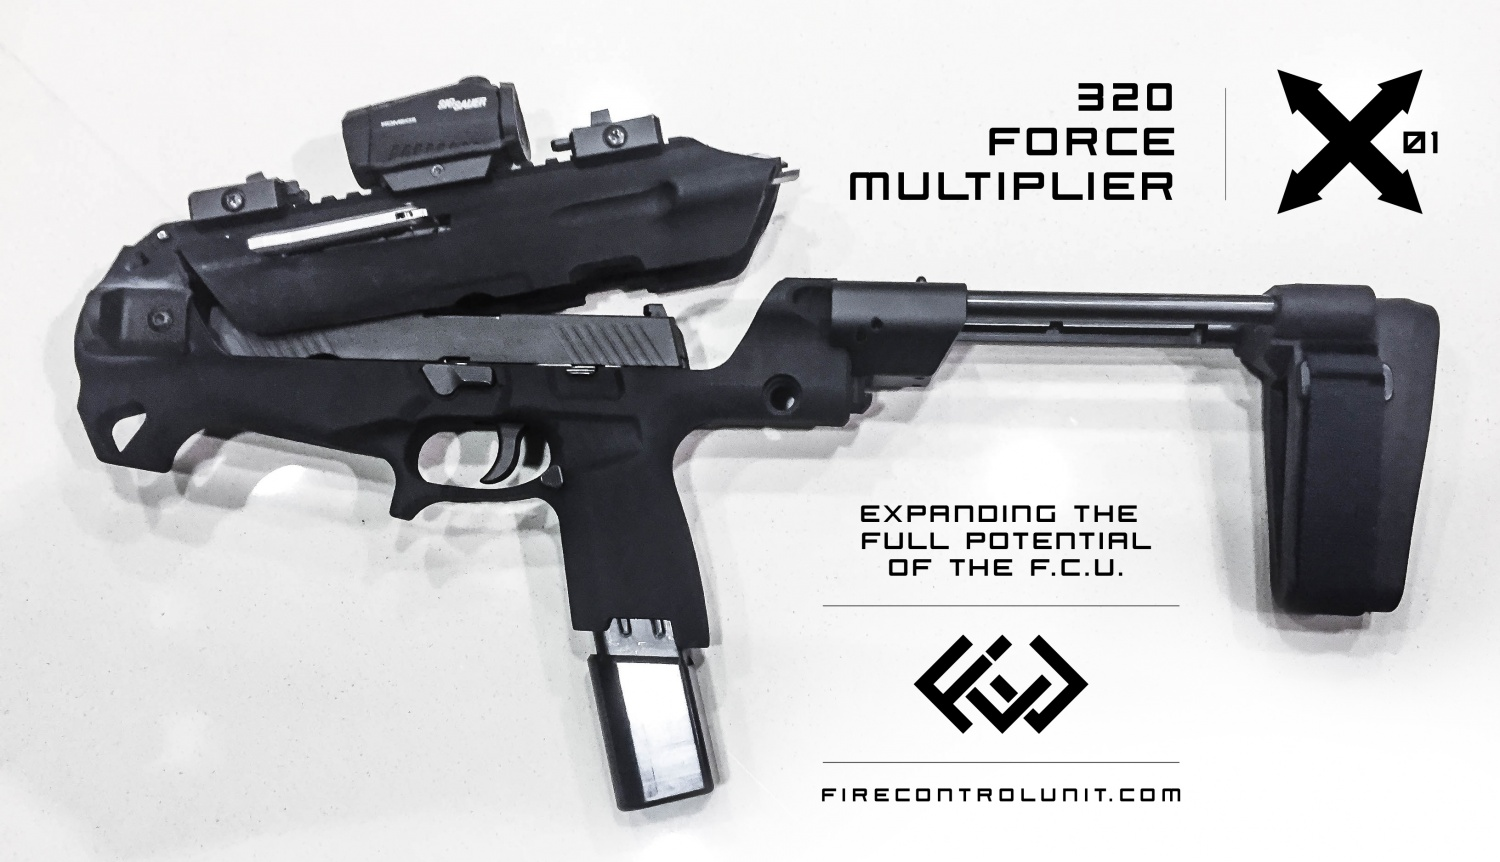 P9 Carbine Chassis - EXO ONE From FireControlUnit -The Firearm Blog